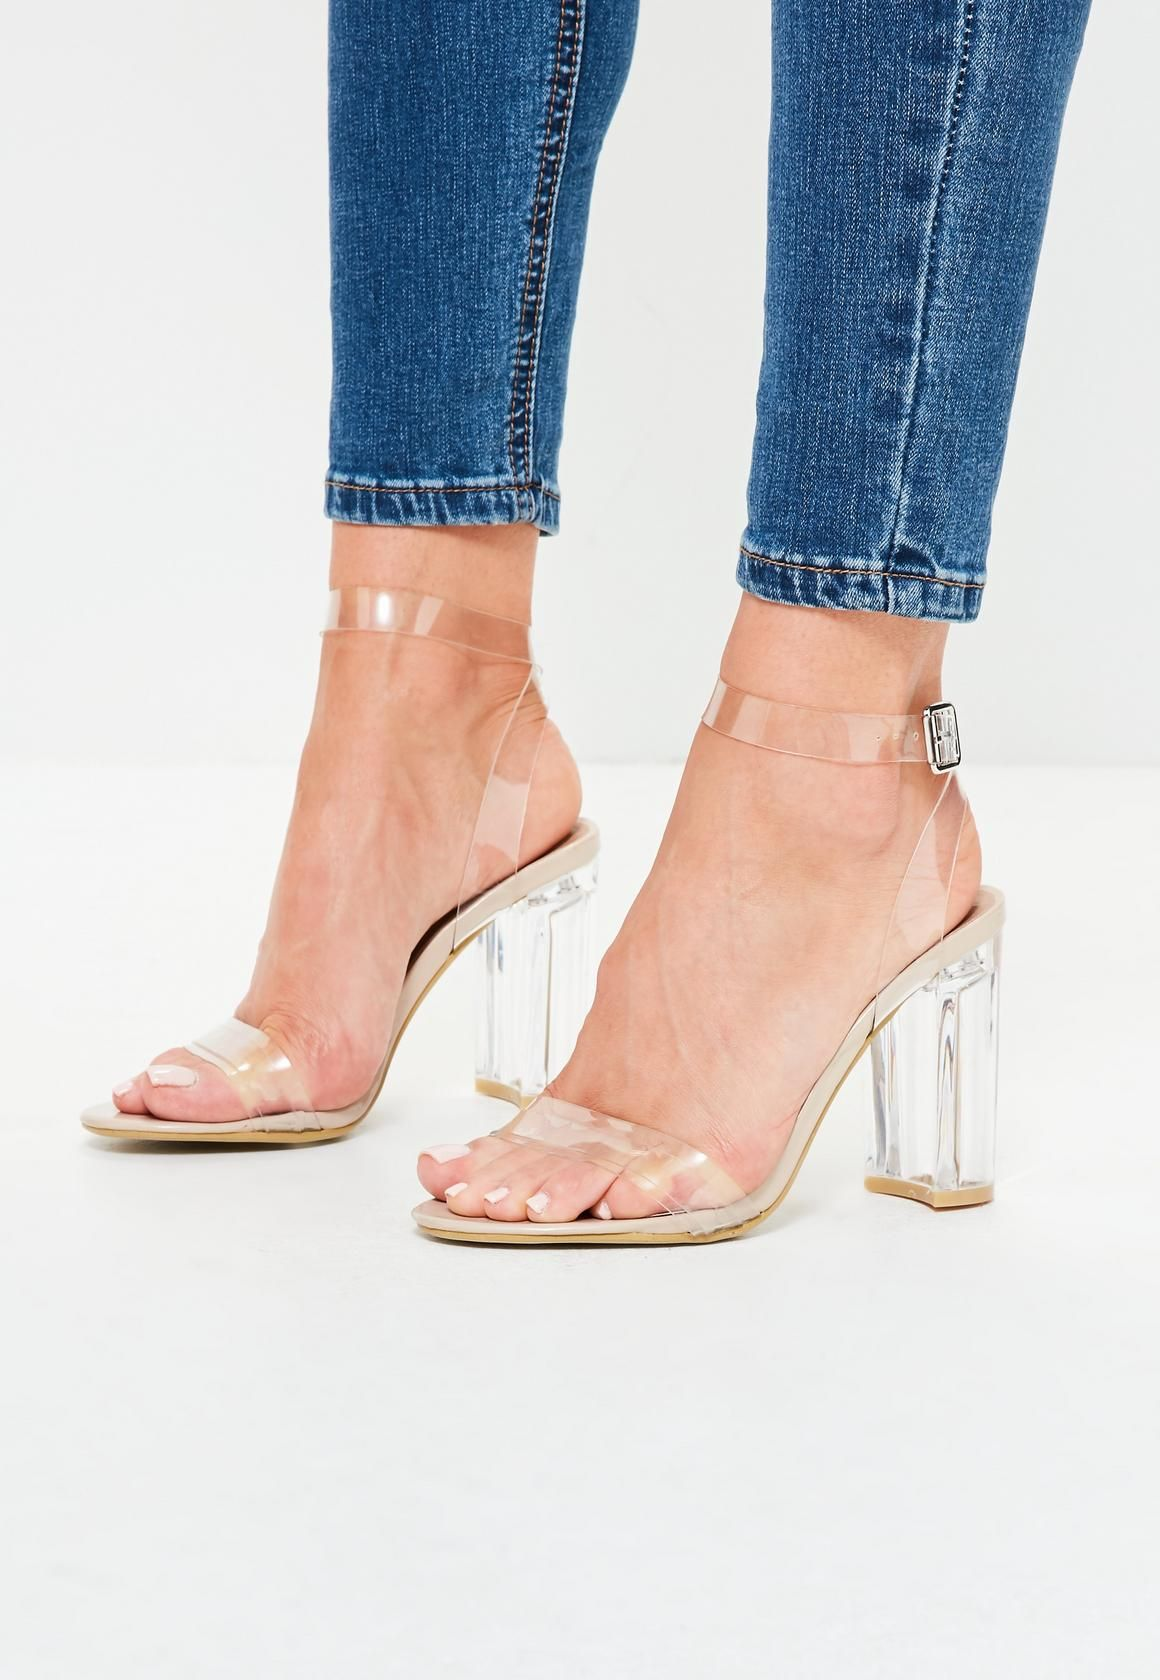 b6f667214643 Missguided - nude clear block heel barely there sandals